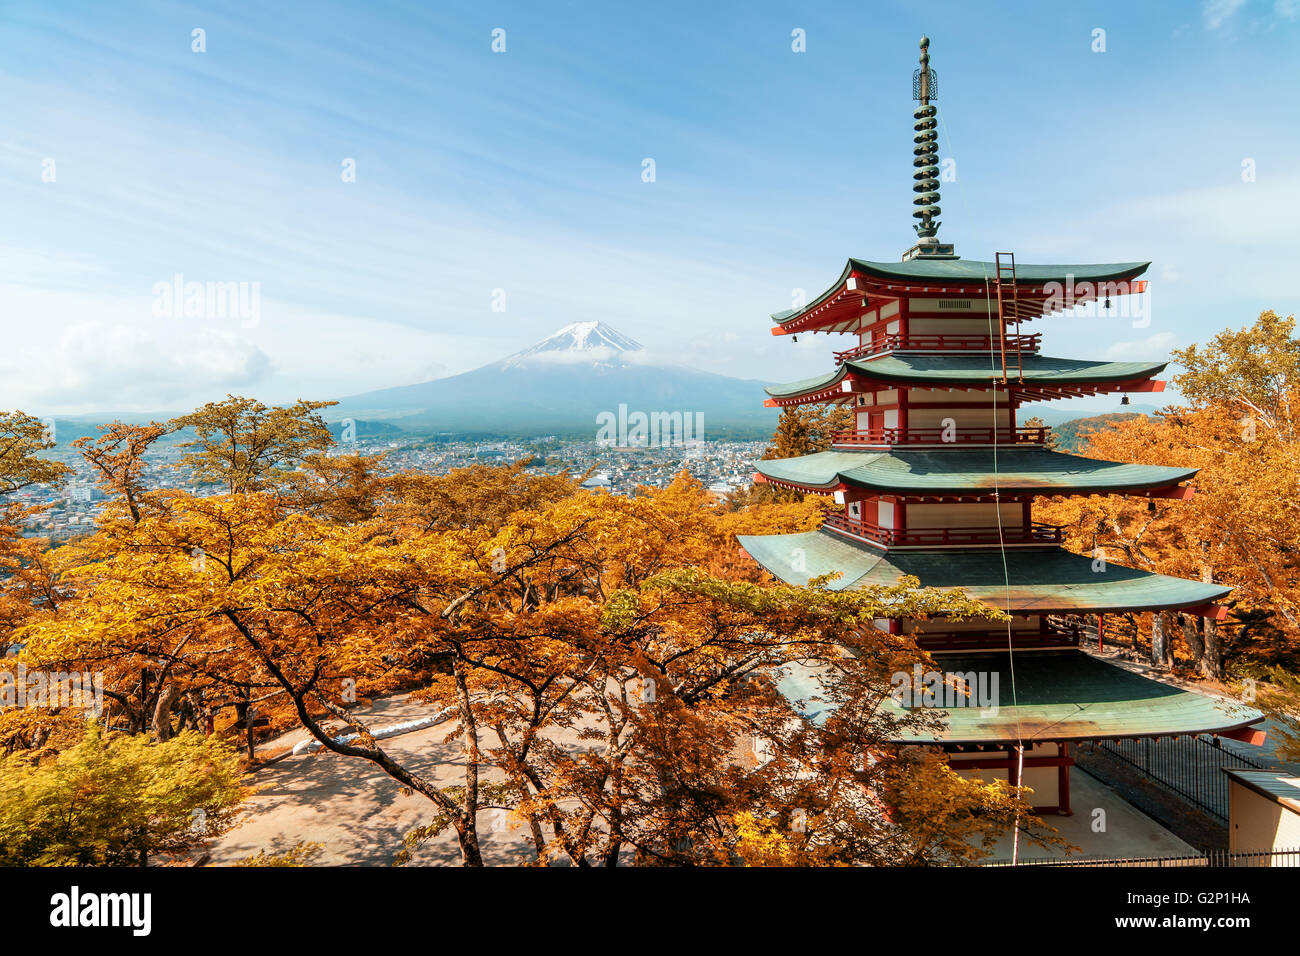 Travel in Japan - Beuatiful autumn in Japan at Red pagoda with Mt. Fuji in background, Japan. - Stock Image